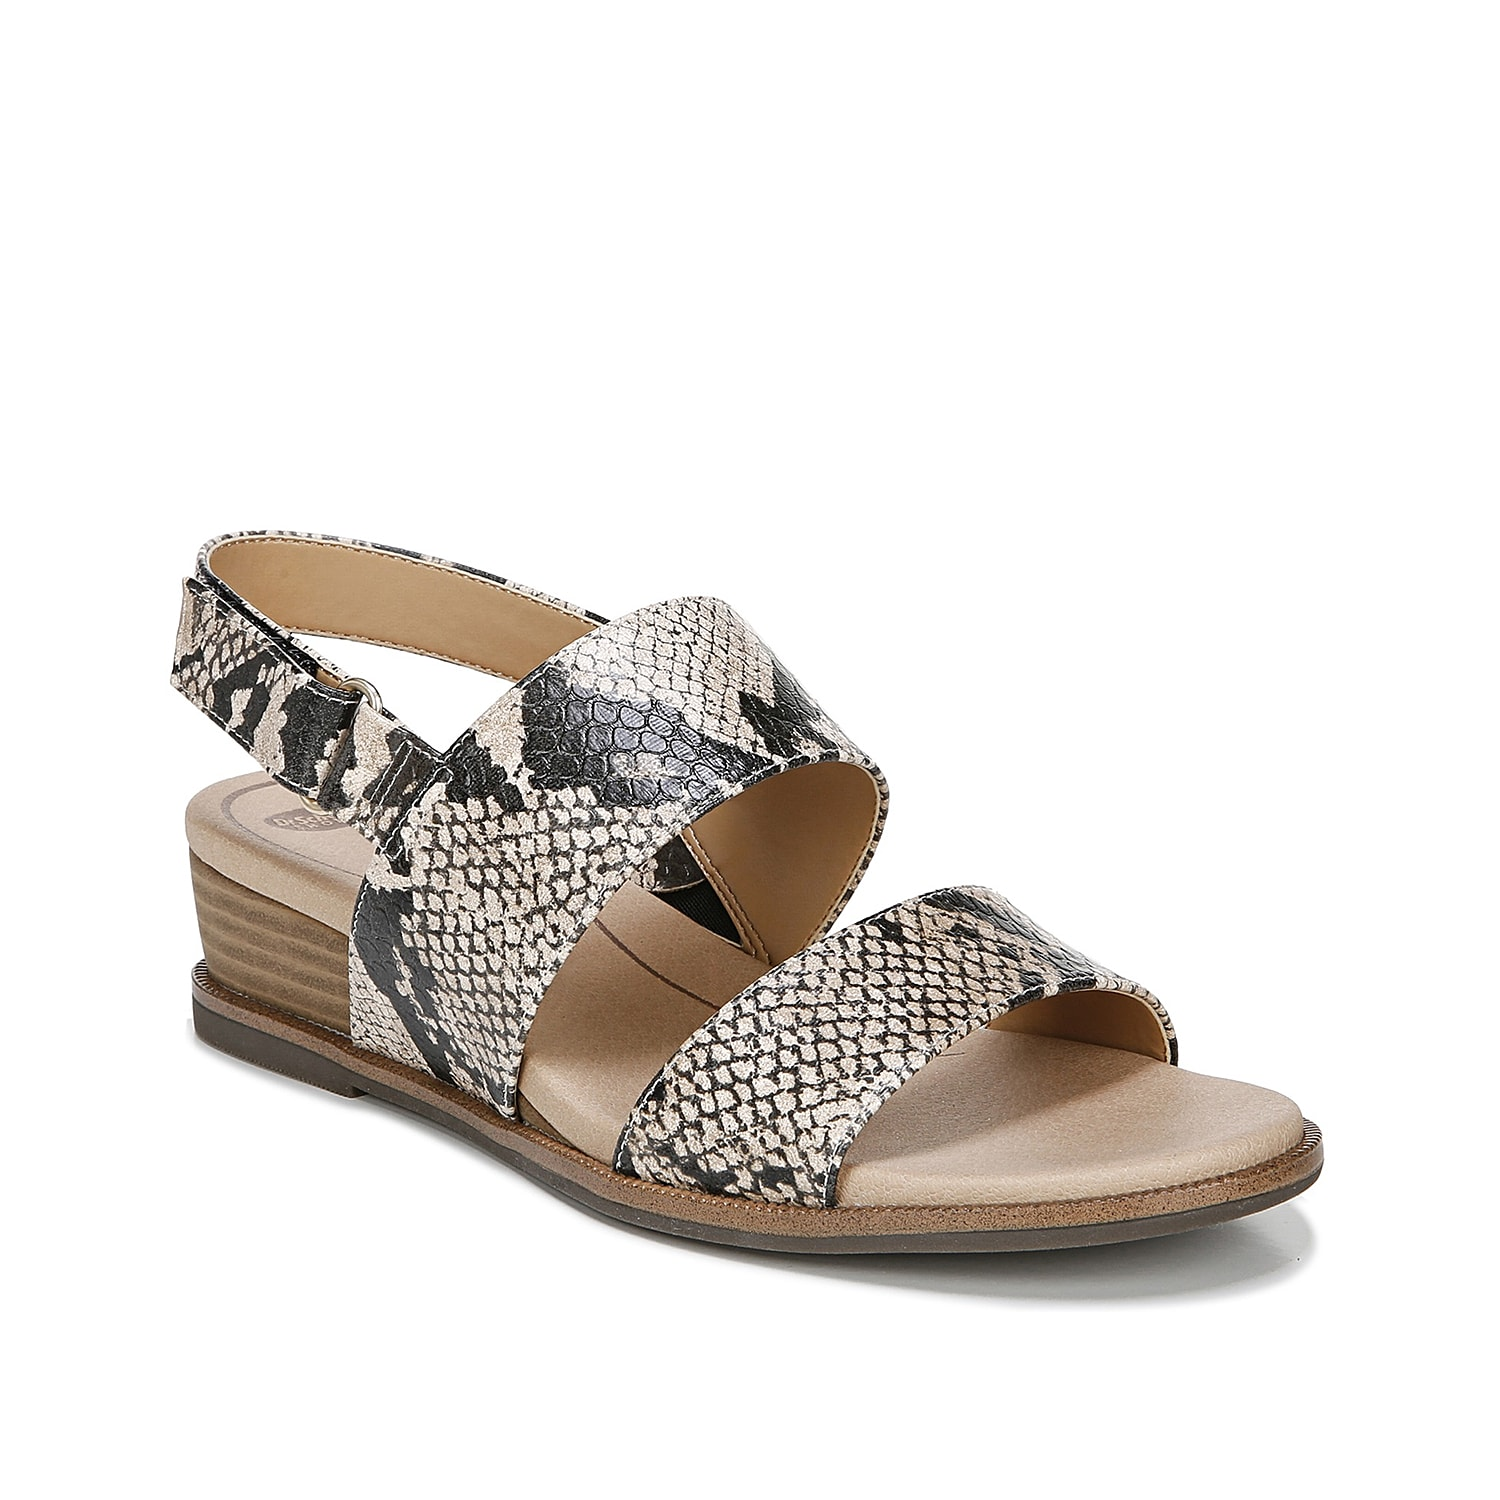 Upgrade your warm weather collection with the Freeform wedge sandal from Dr. Scholl\\\'s. This casual pair is fashioned with a secured hook-and-loop strap and anatomical, cushioned footbed for cloud-like steps!